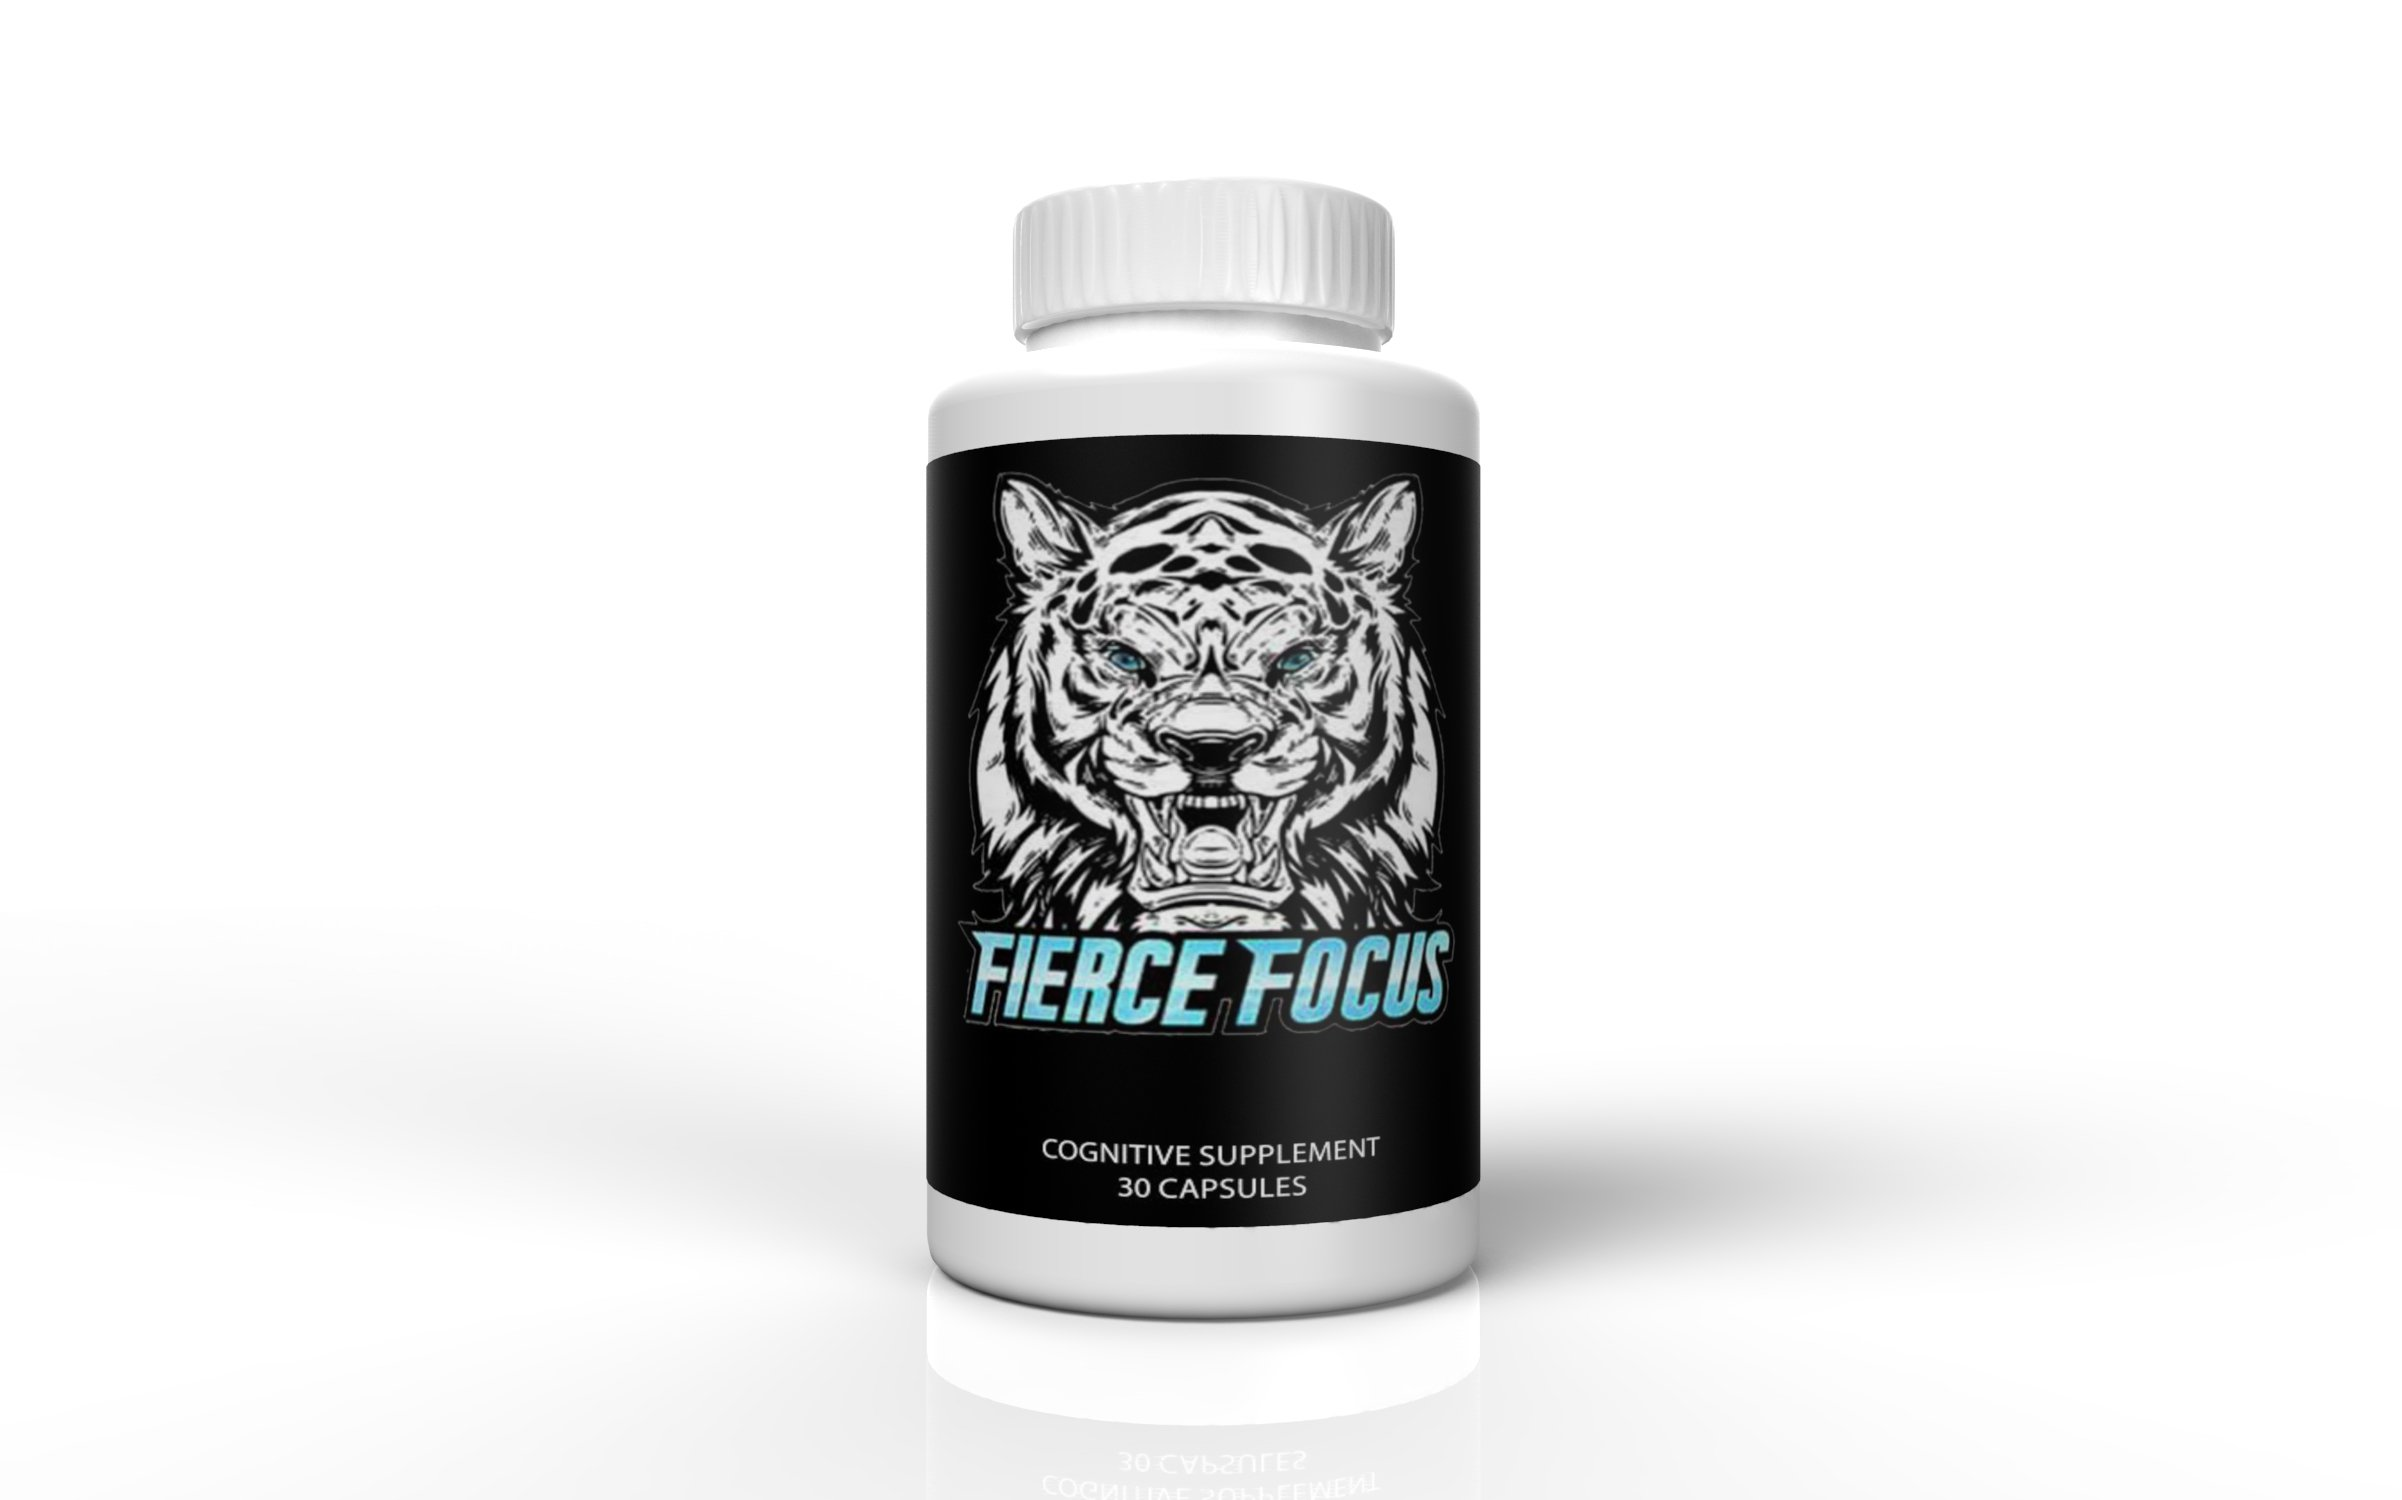 Fierce Focus- Natural Brain Function Support - Memory, Focus & Clarity Formula -Optimal Performance Natural Nootropic and Cognitive Support Supplement - DMAE- 30 Capsules by Fierce Focus